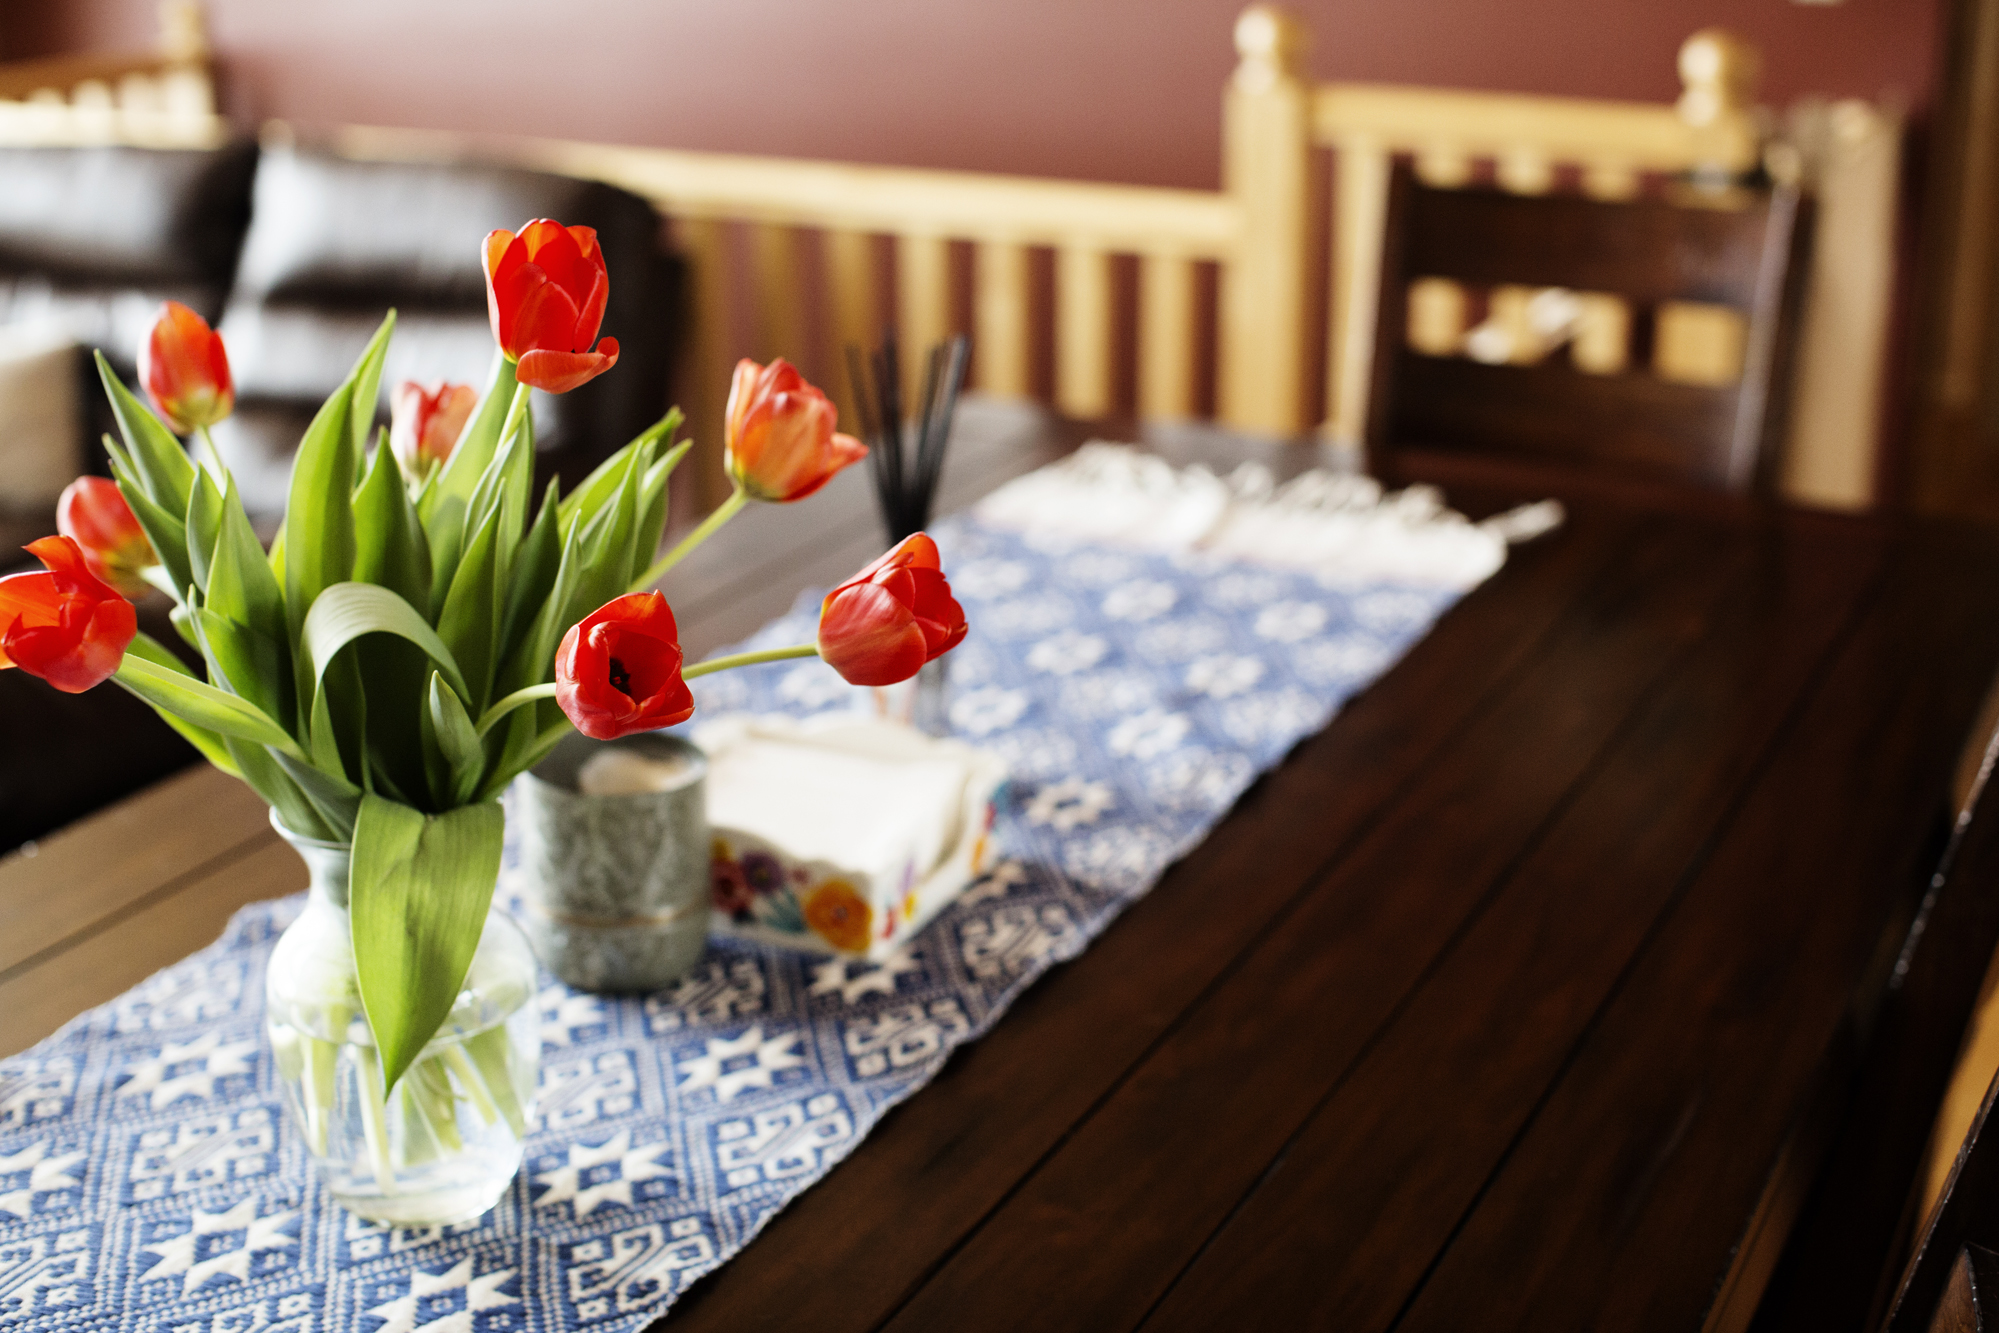 A_Place_At_The_Table_0067.jpg